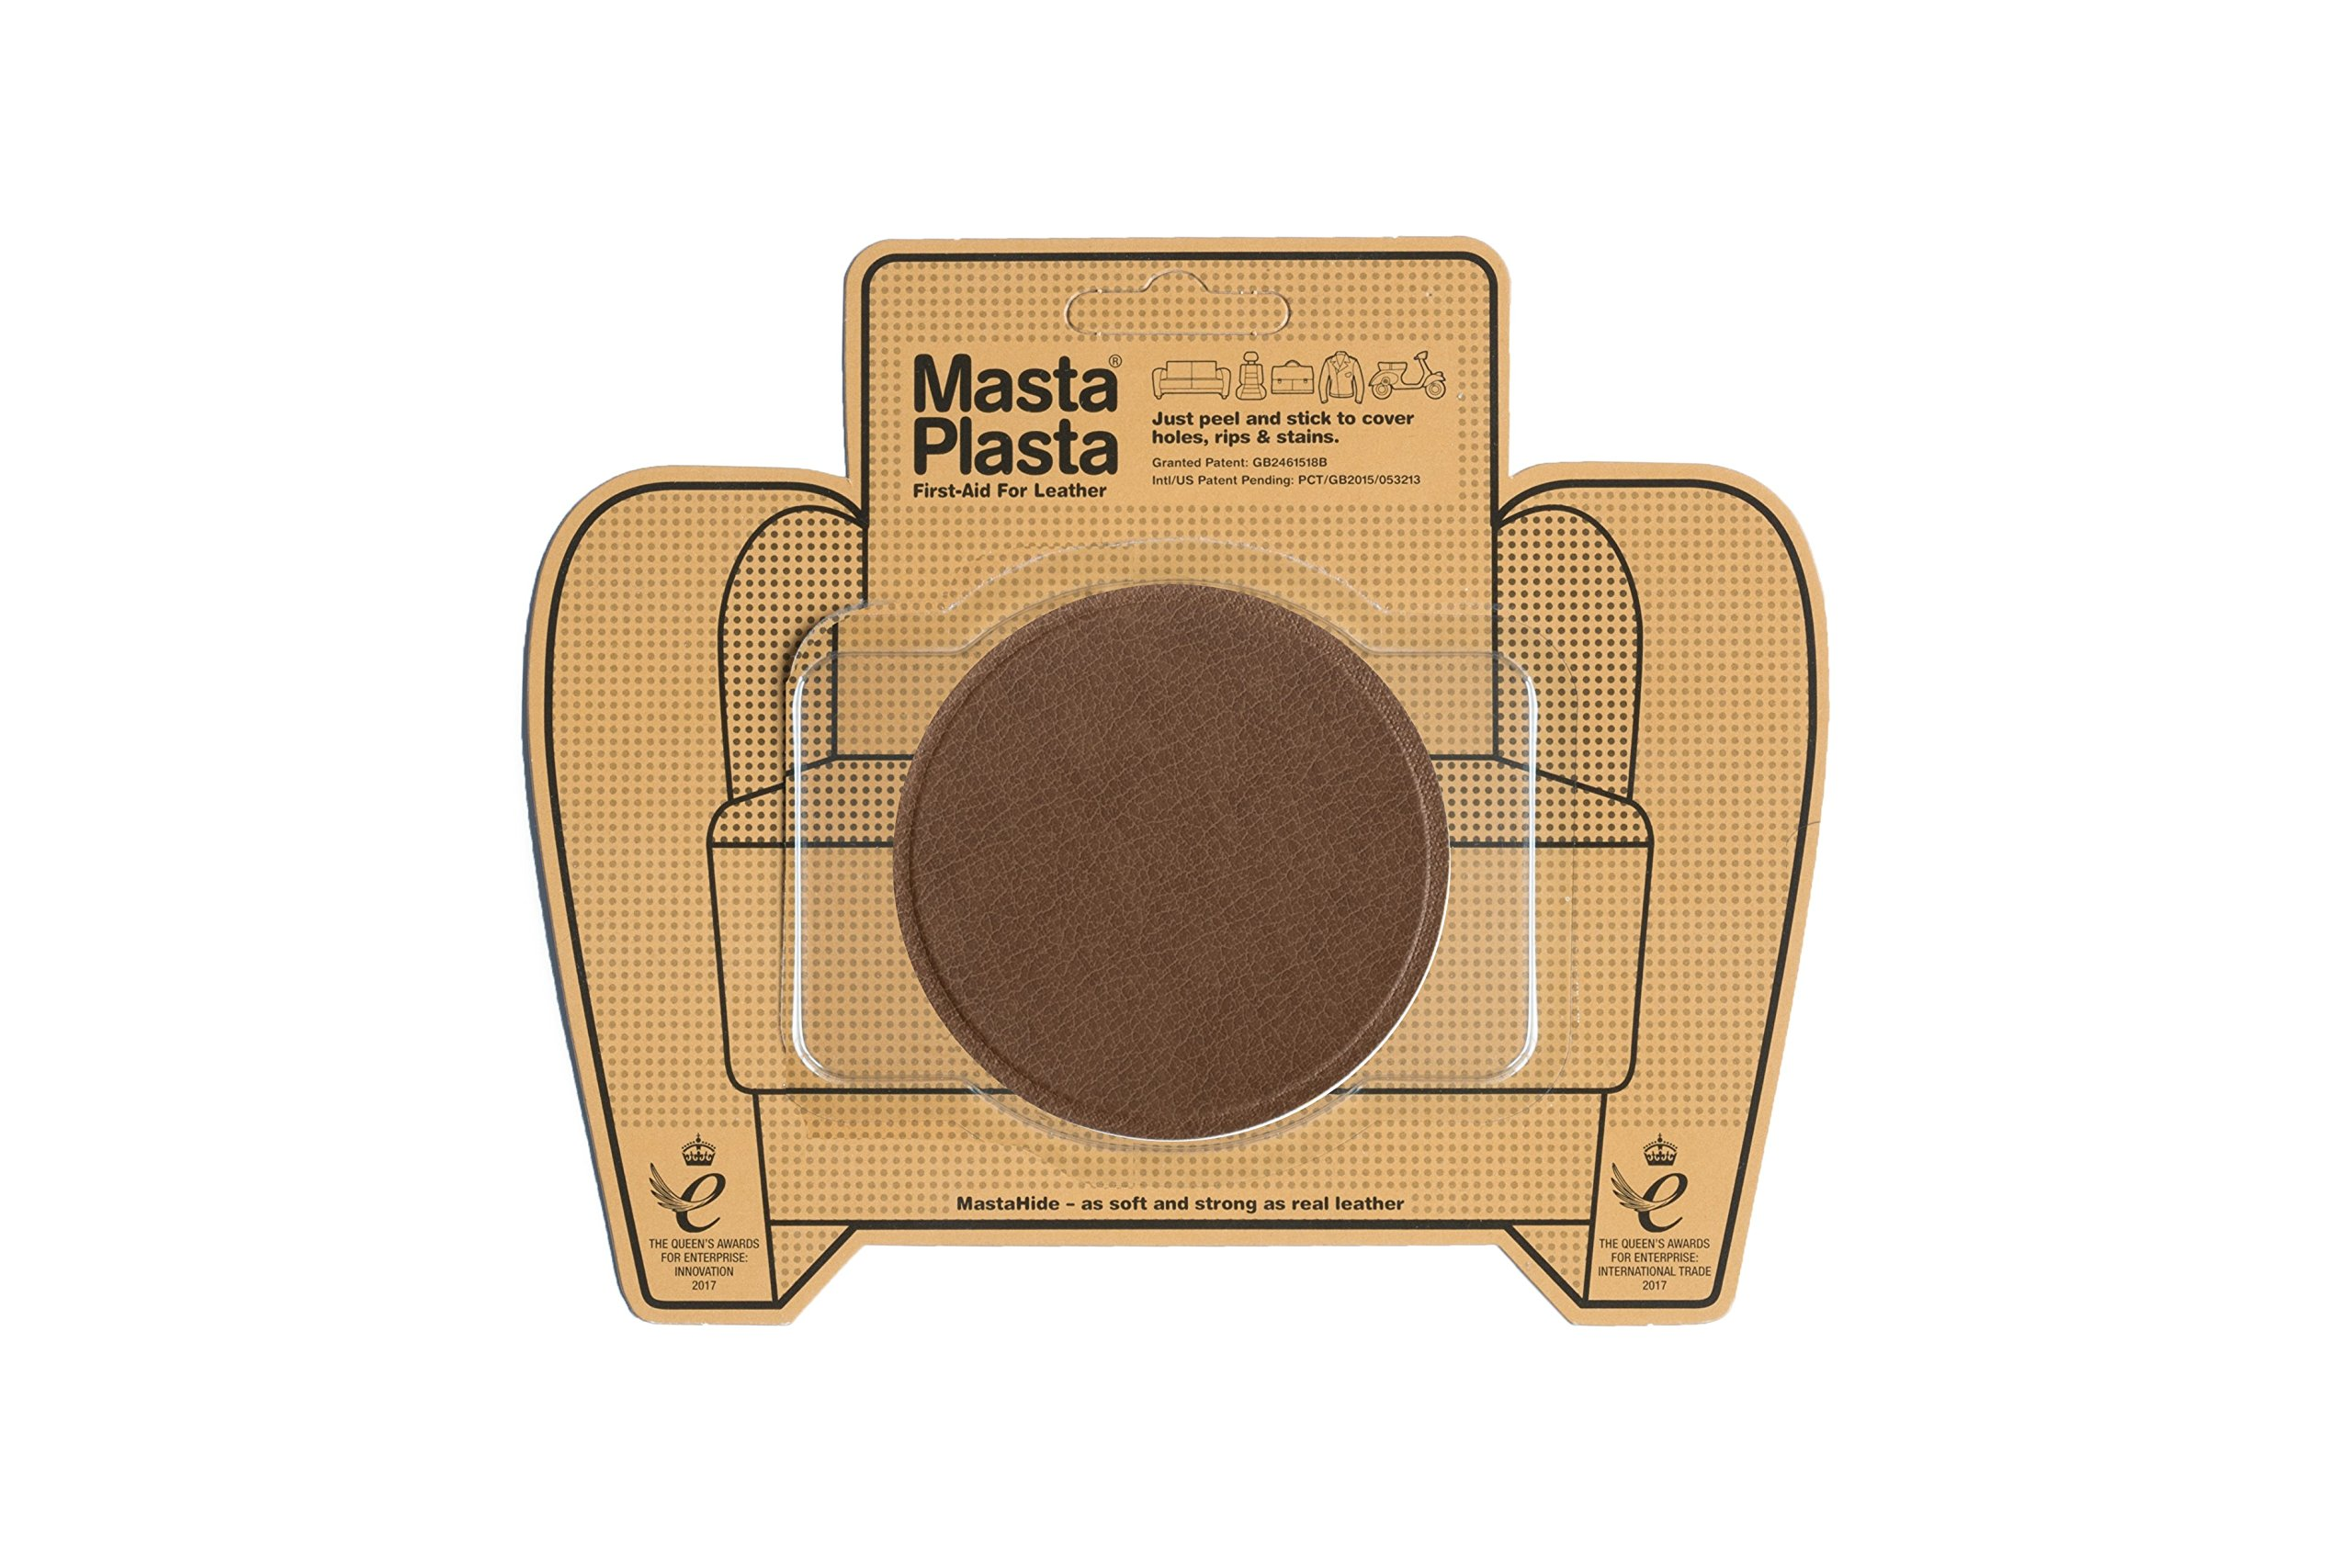 MastaPlasta, Leather Repair Patch, First-aid for Sofas, Car Seats, Handbags, Jackets, etc. Ivory Tan, Super Circle 3-inch by 3-inch, Designs Vary